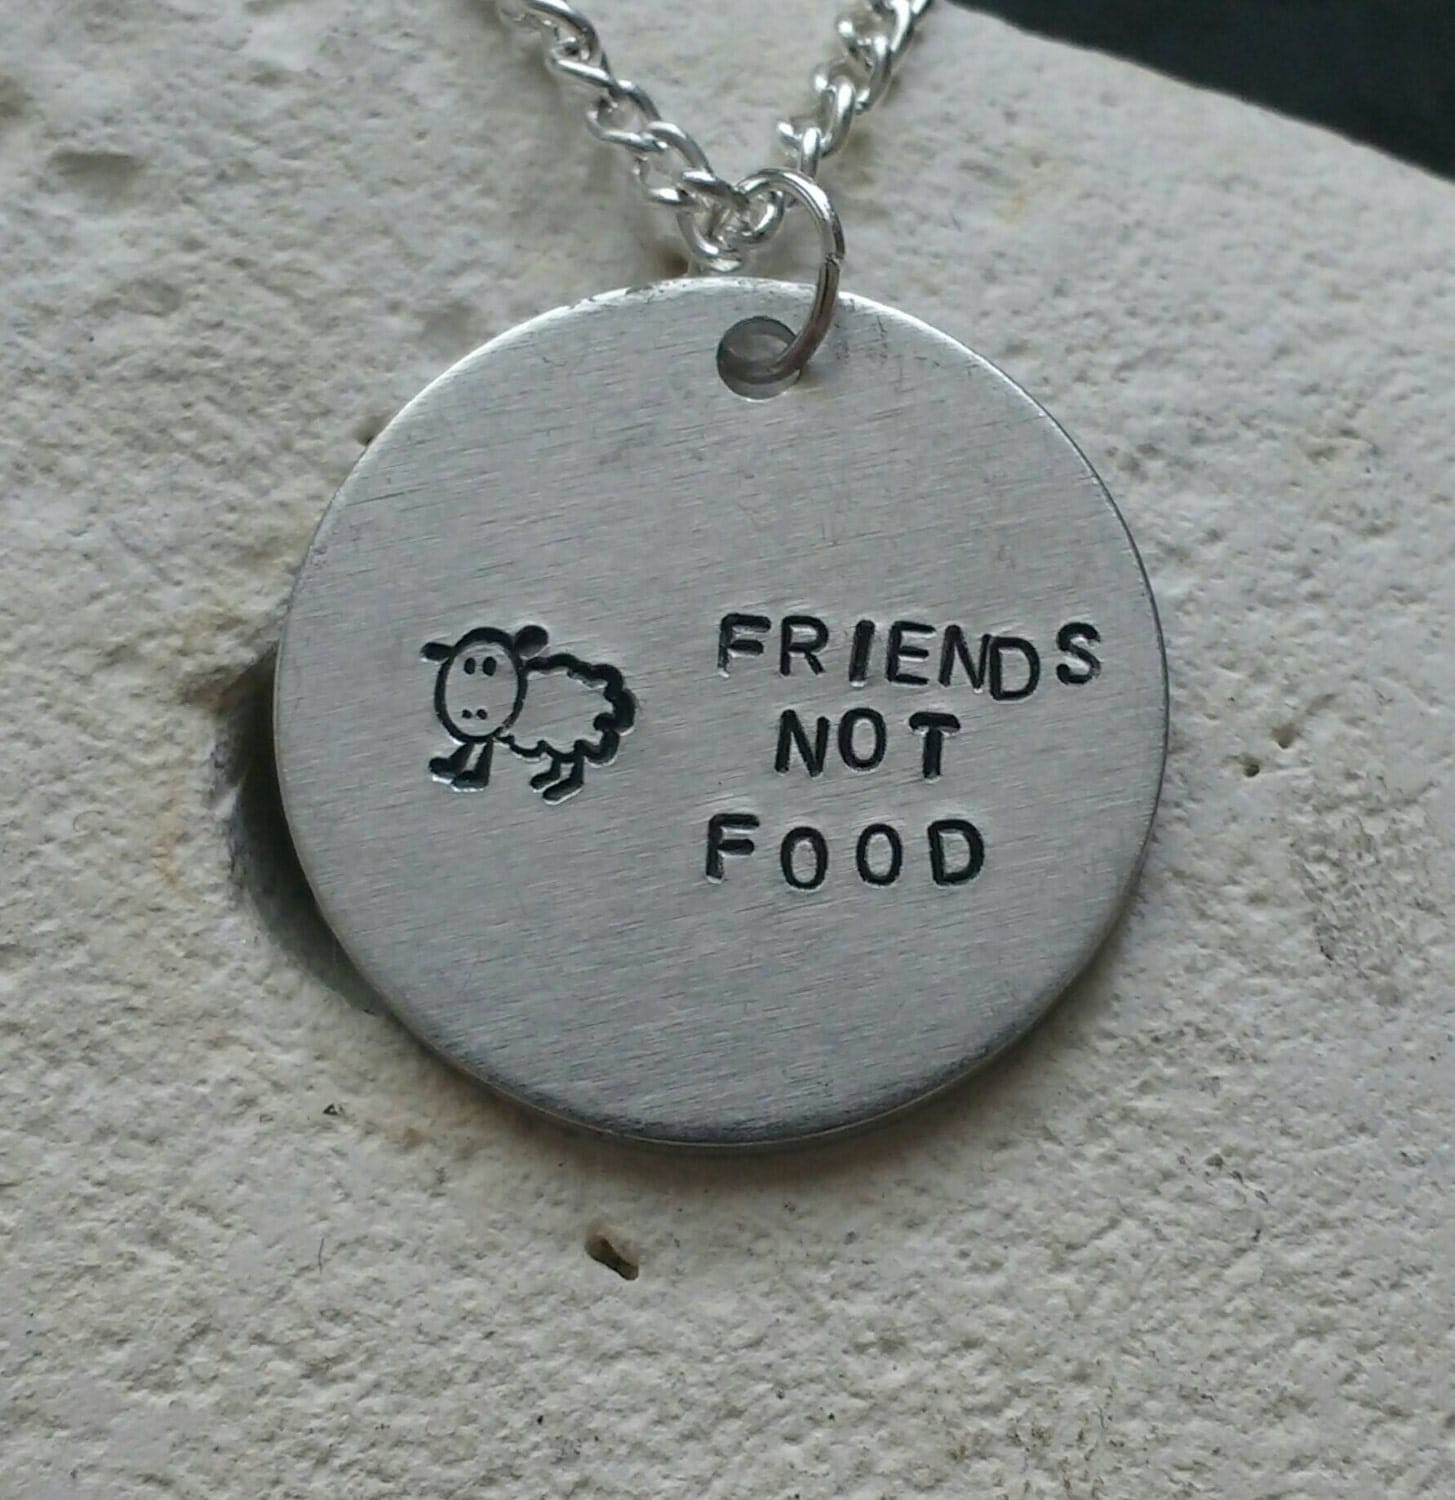 """Friends not food sheep necklace - vegan veggie jewelry - animal rights jewellery - handstamped 25mm pendant on 18"""" chain"""